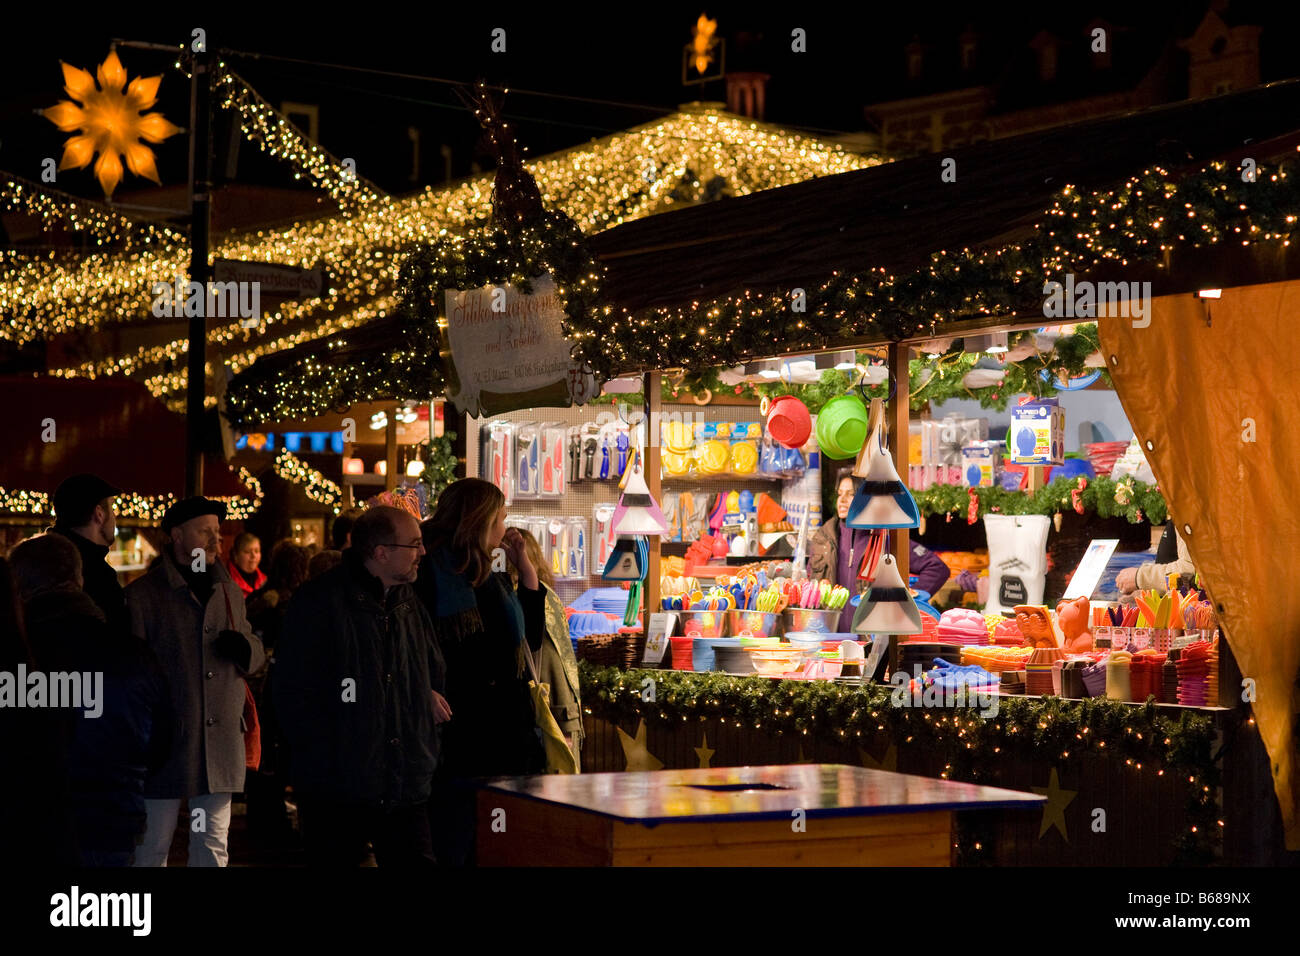 Light chains above stalls on a german christmas market - Stock Image